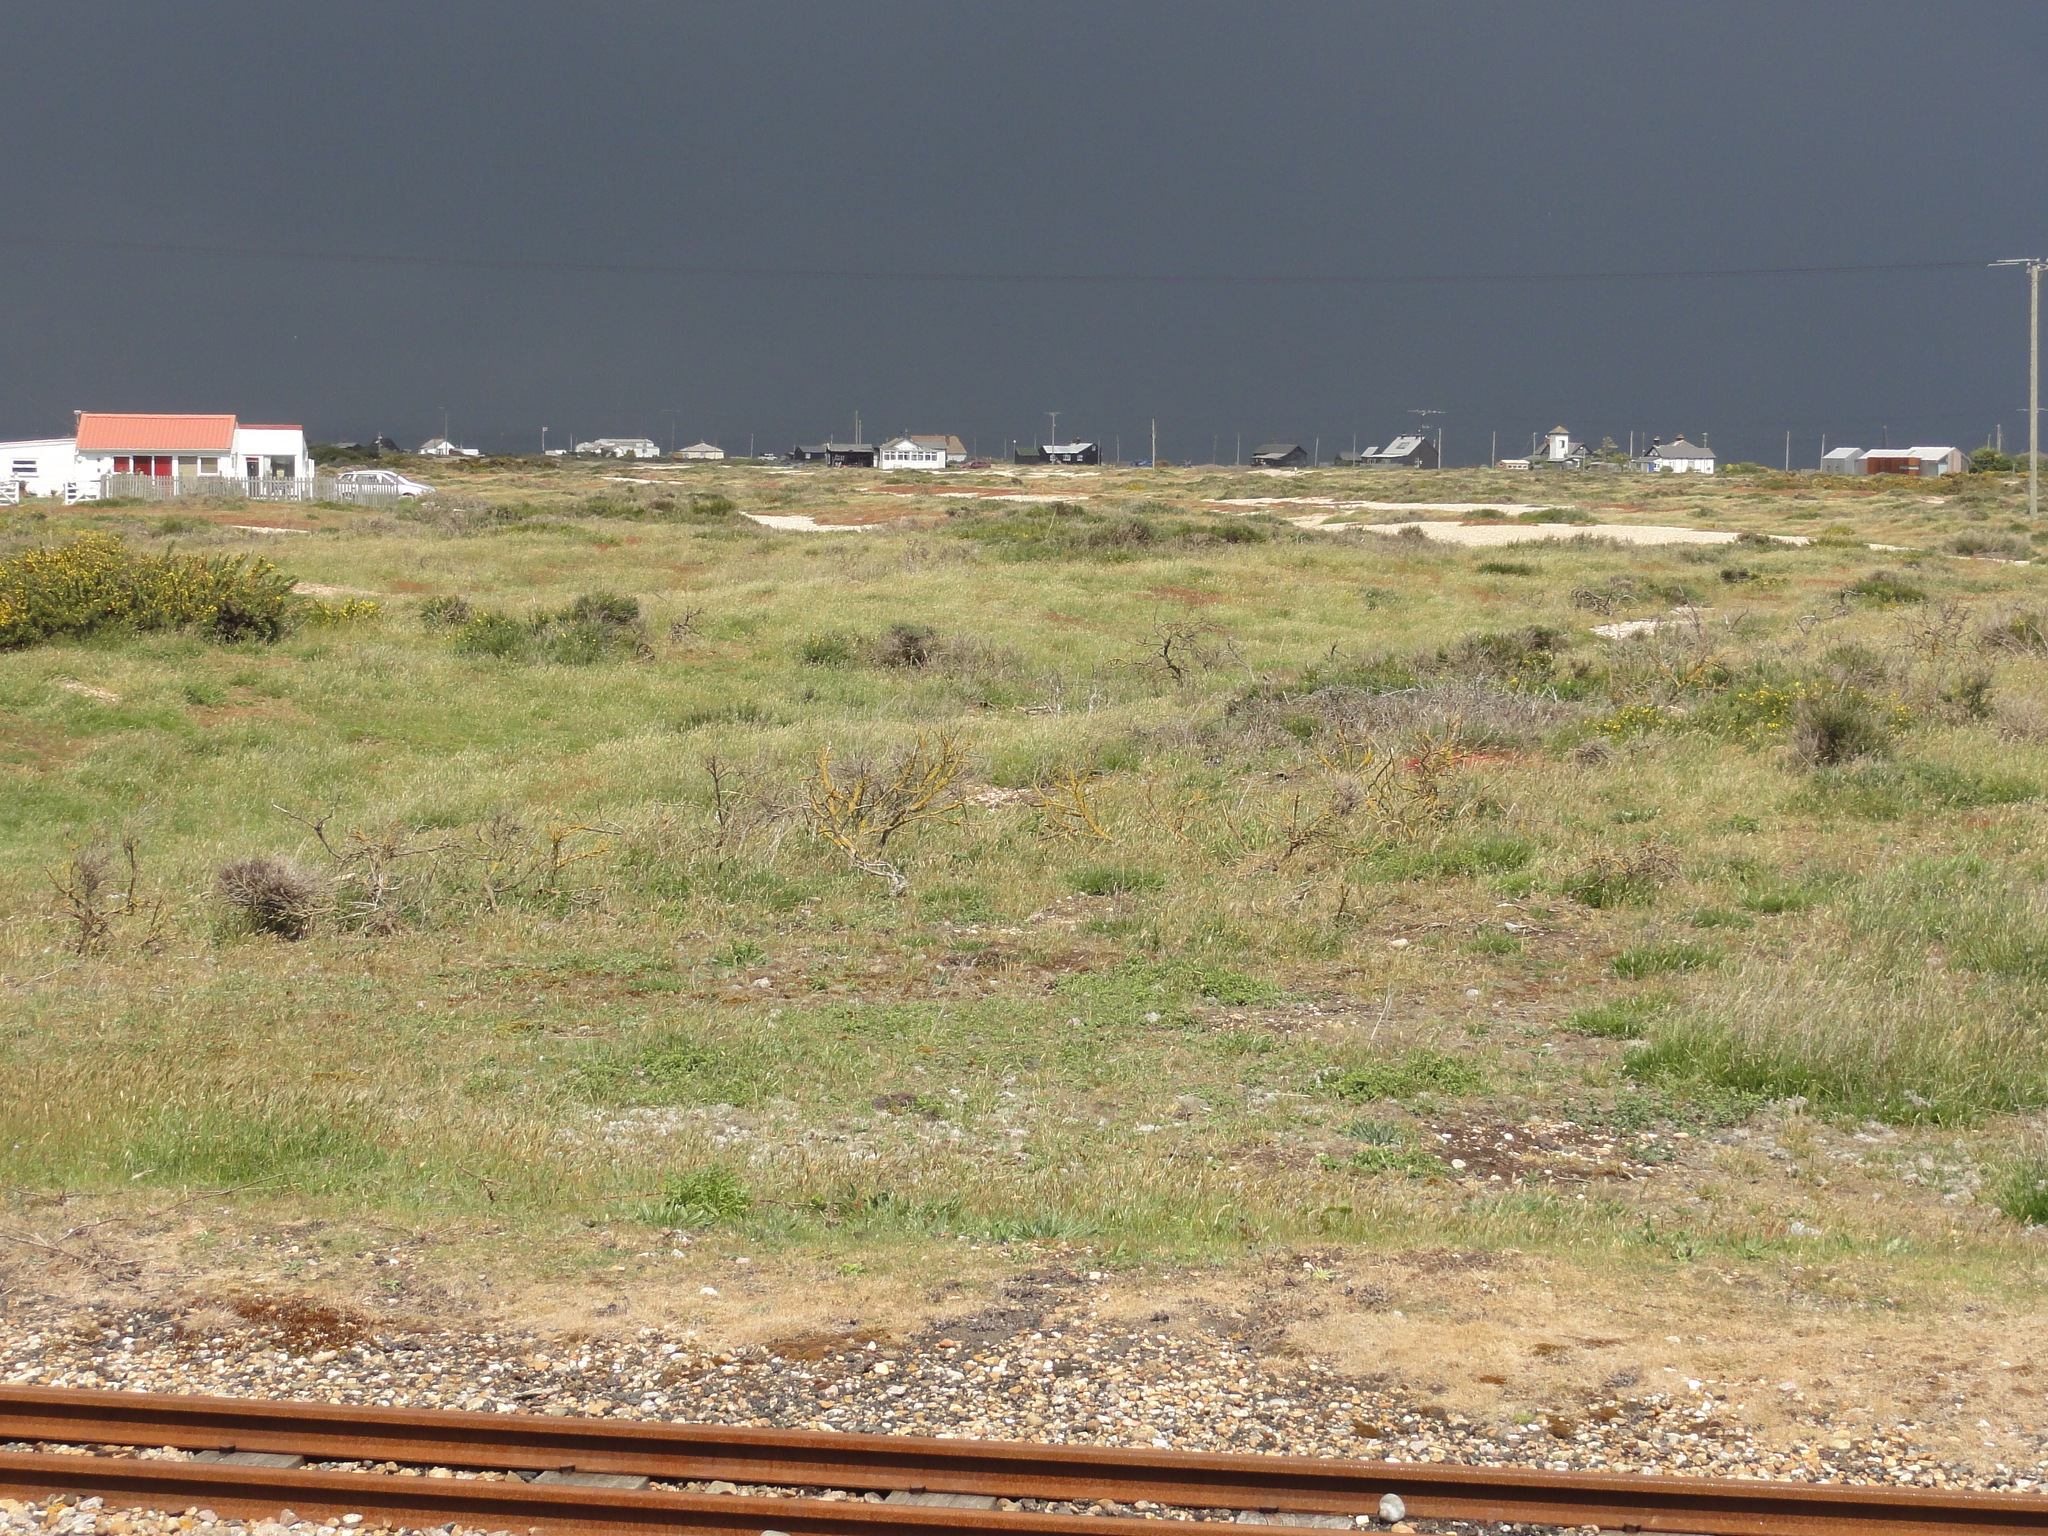 DUNGENESS KENT by mikewoodland21